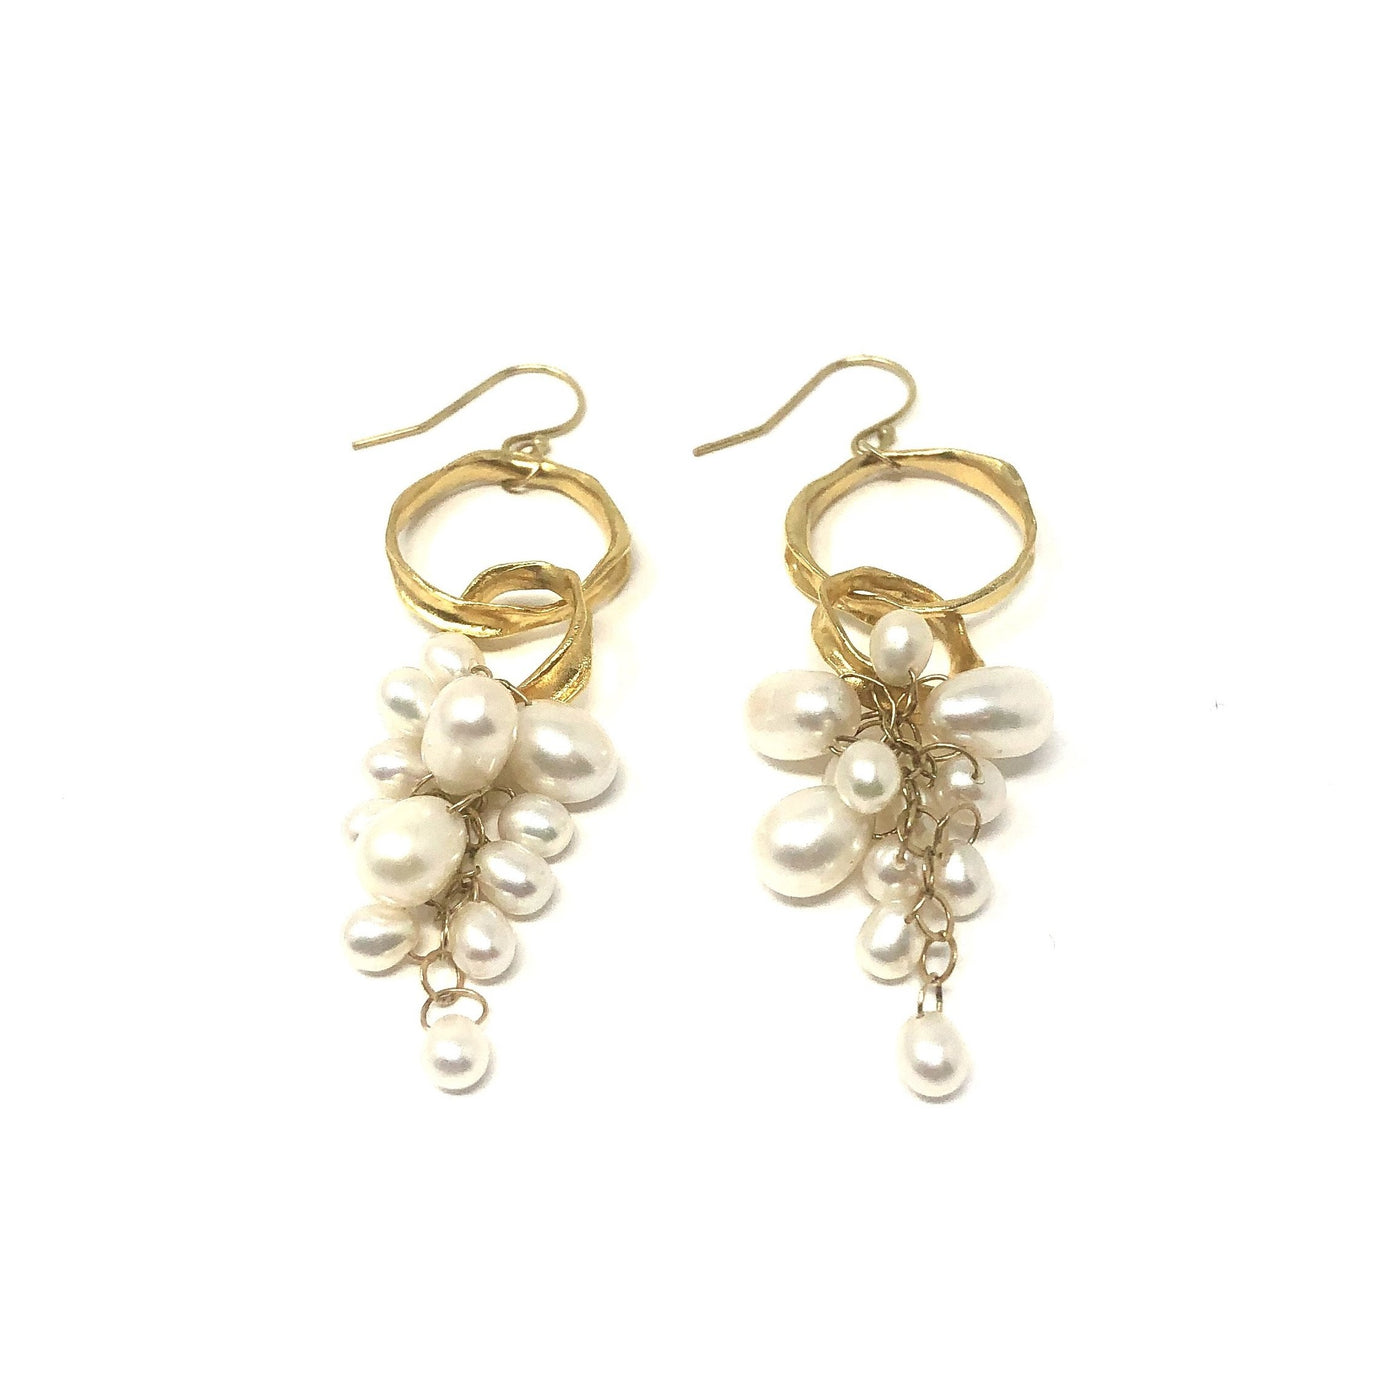 MSH EWFC27 MULTI PEARL GOLD DANGLES